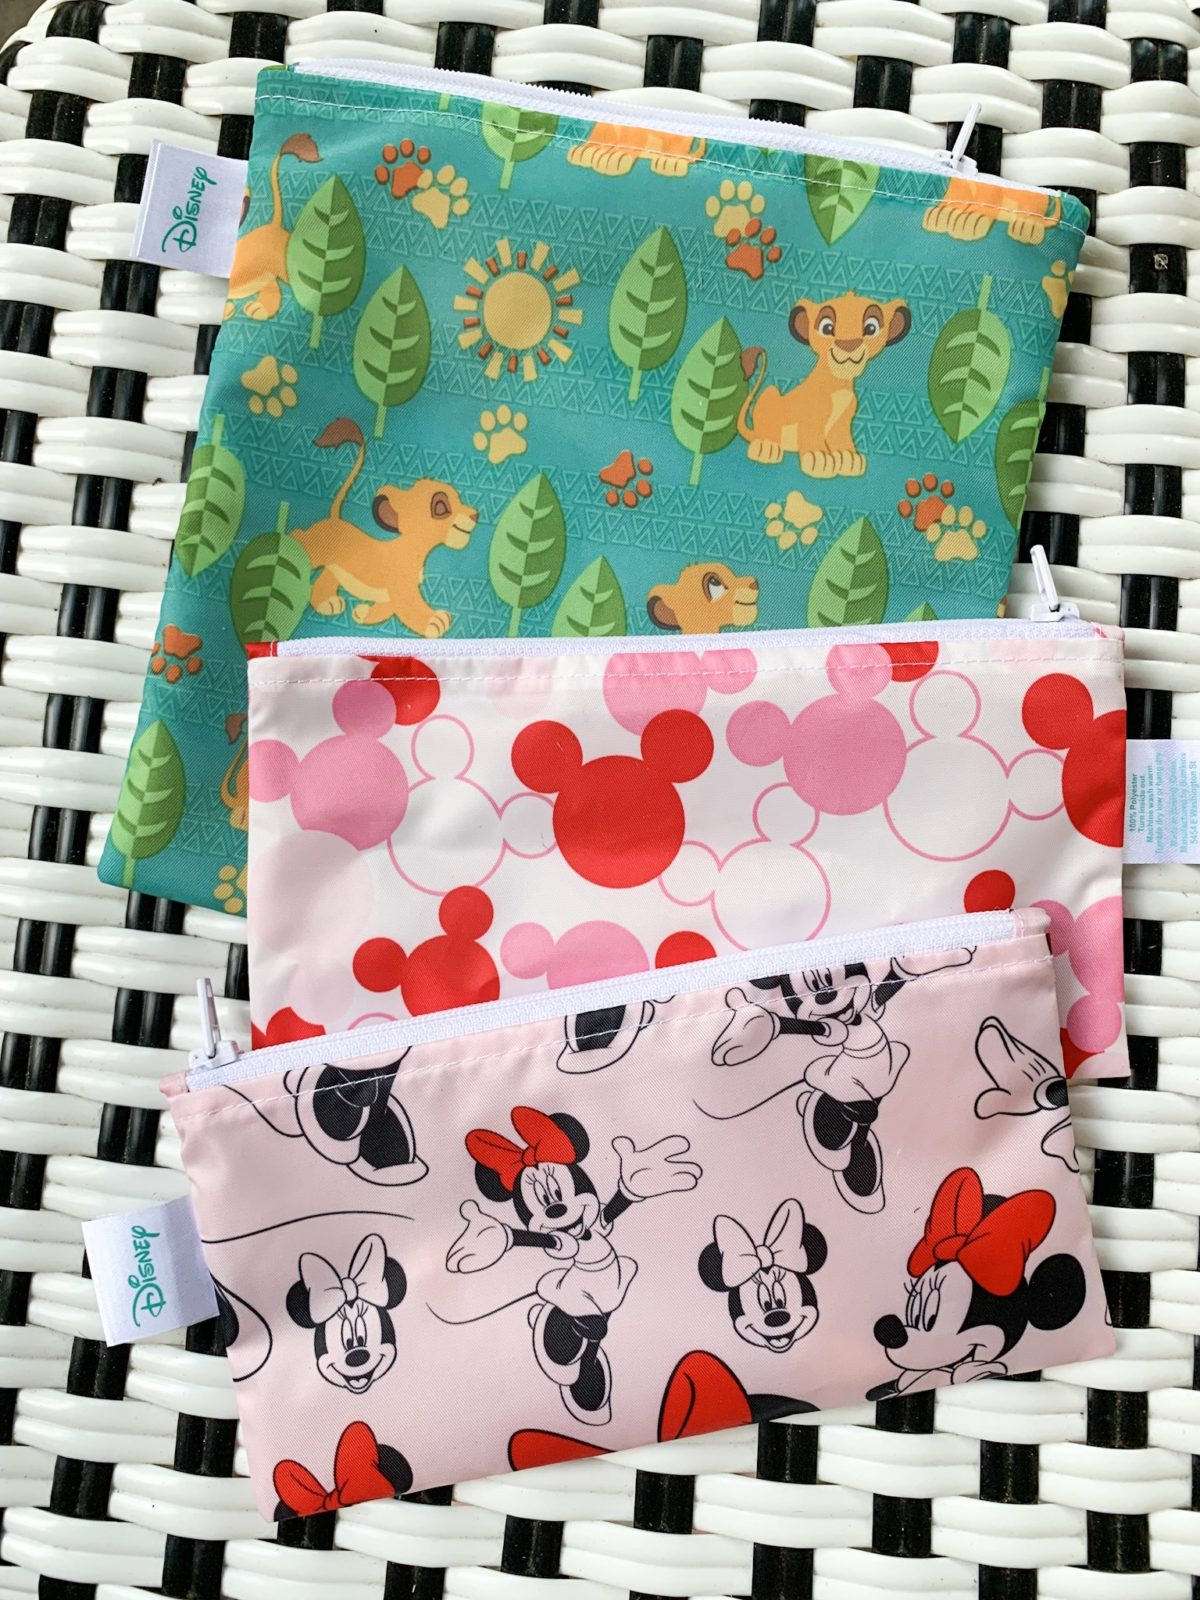 washable and reusable snack bags